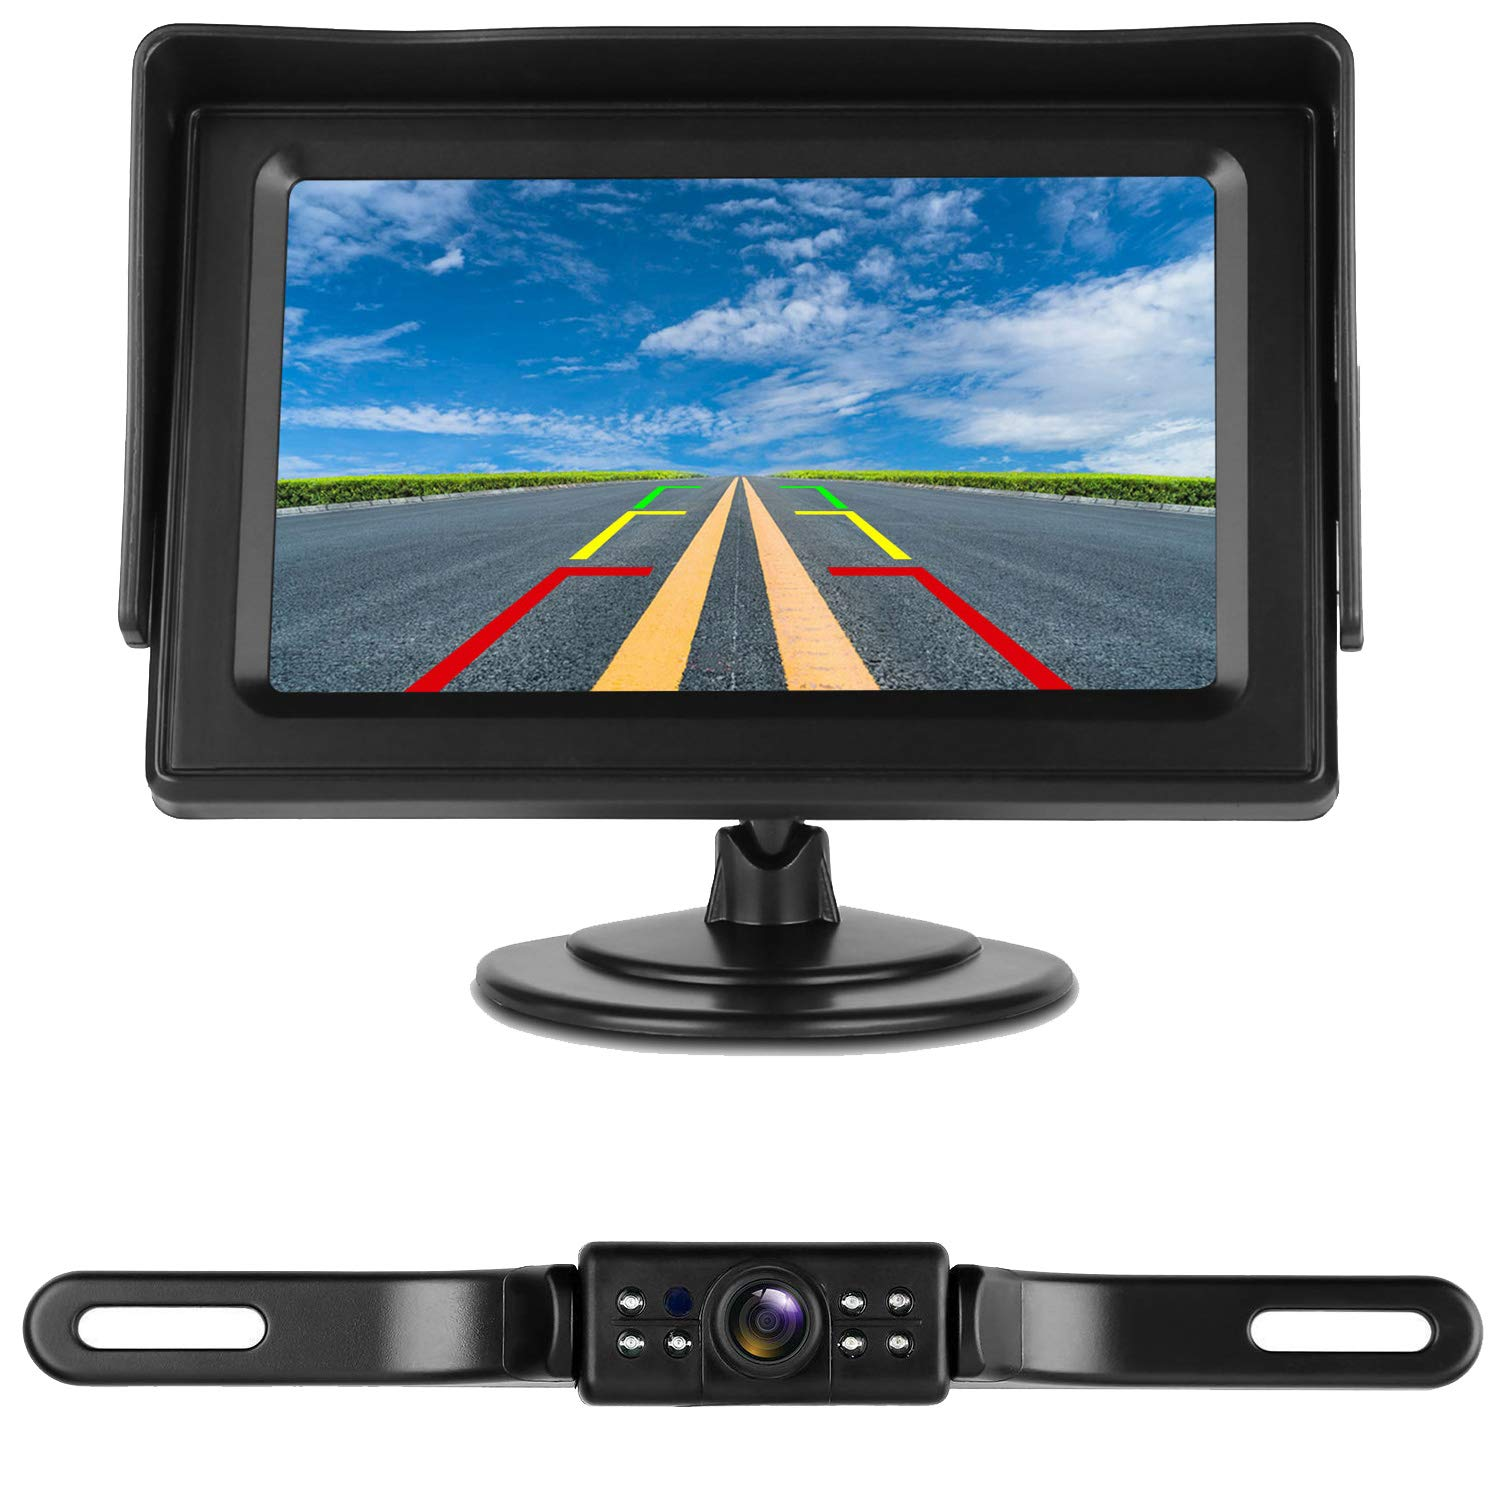 iStrong Backup Camera and Monitor Kit - Best Wireless Backup Cameras